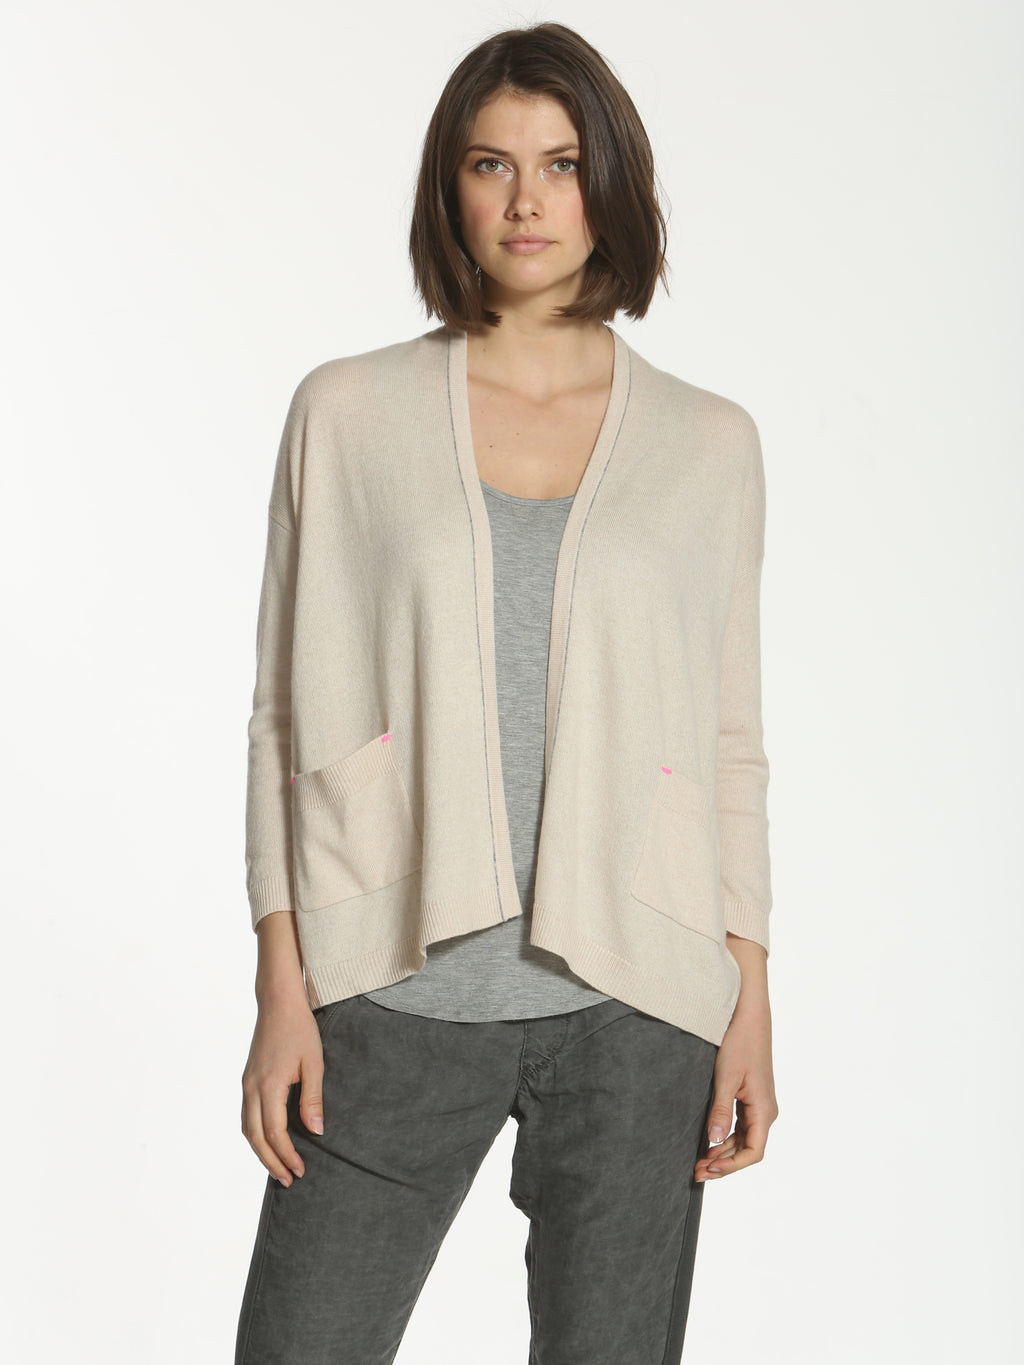 Luxe Chill Cardigan - Oatmeal